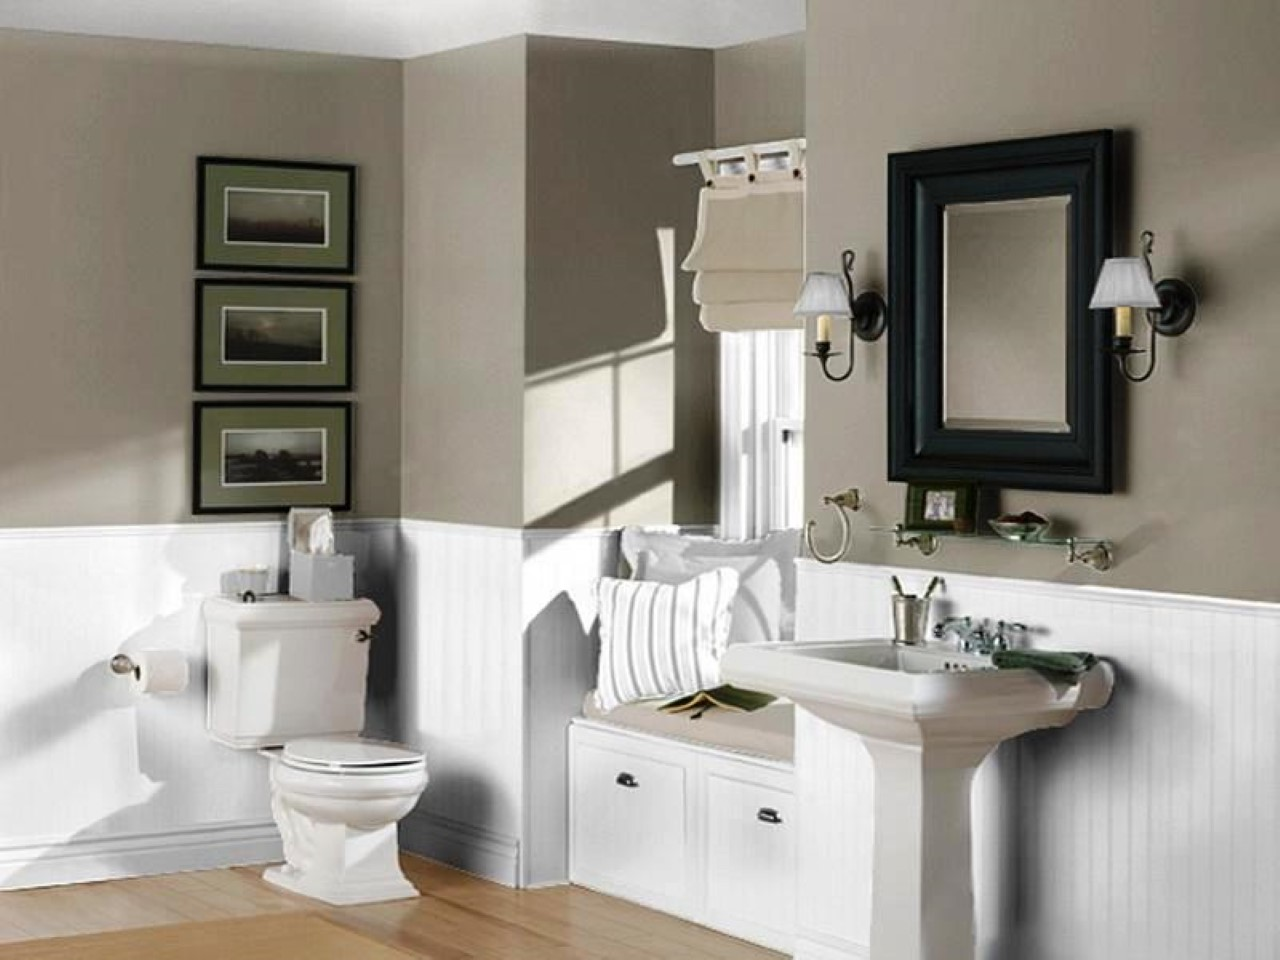 2014 bathroom colors favorite pottery barn paint colors 2014 great bathroom colors 2015 the 6 biggest bathroom trends of 2015